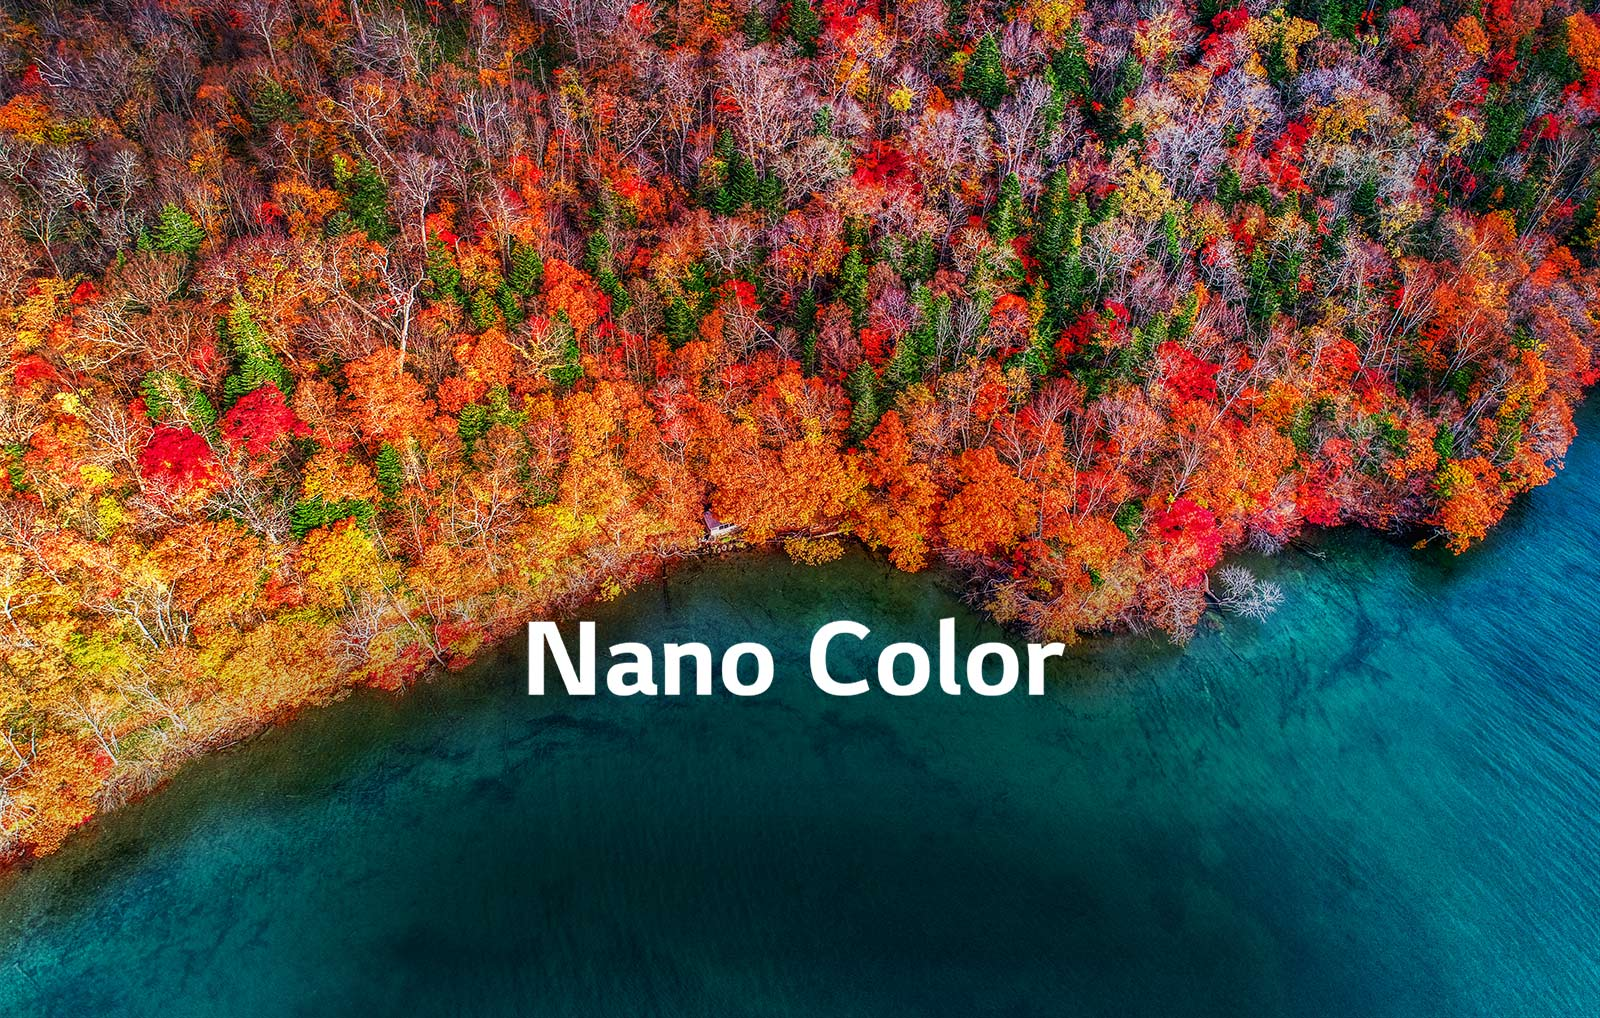 LG Nano Color TV